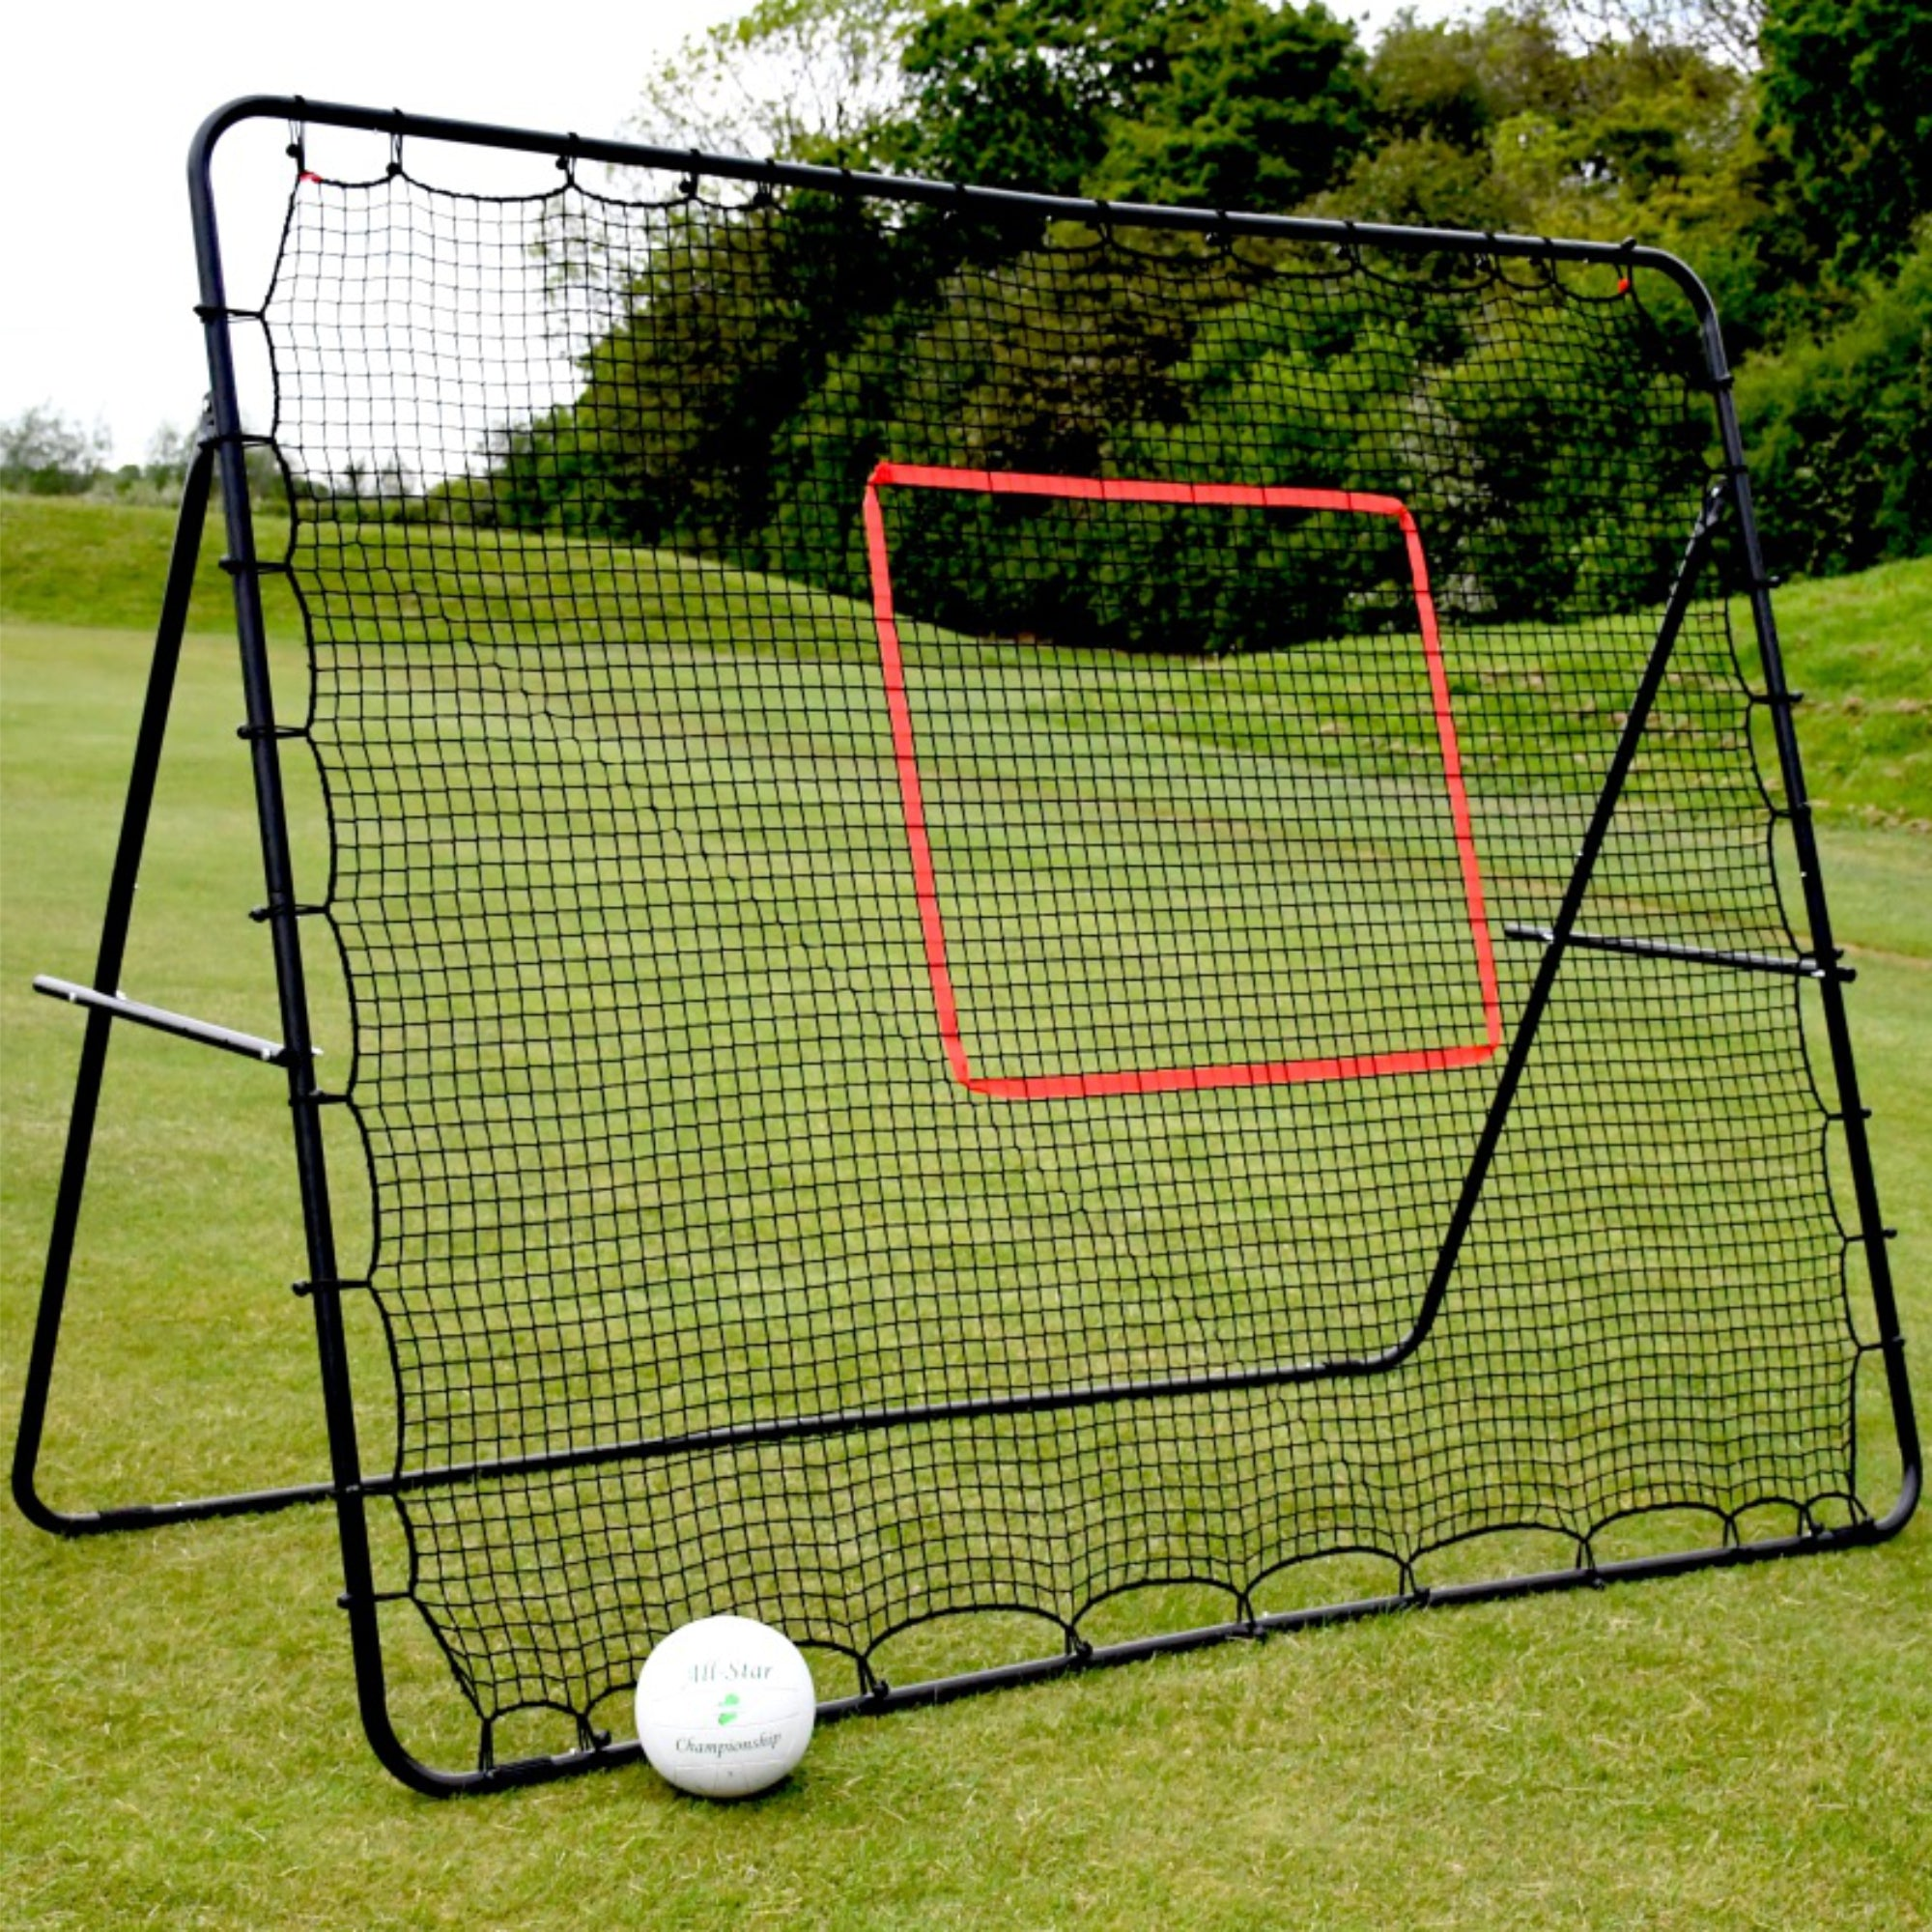 Black steel frame large rebounder with red taped target zone in middle